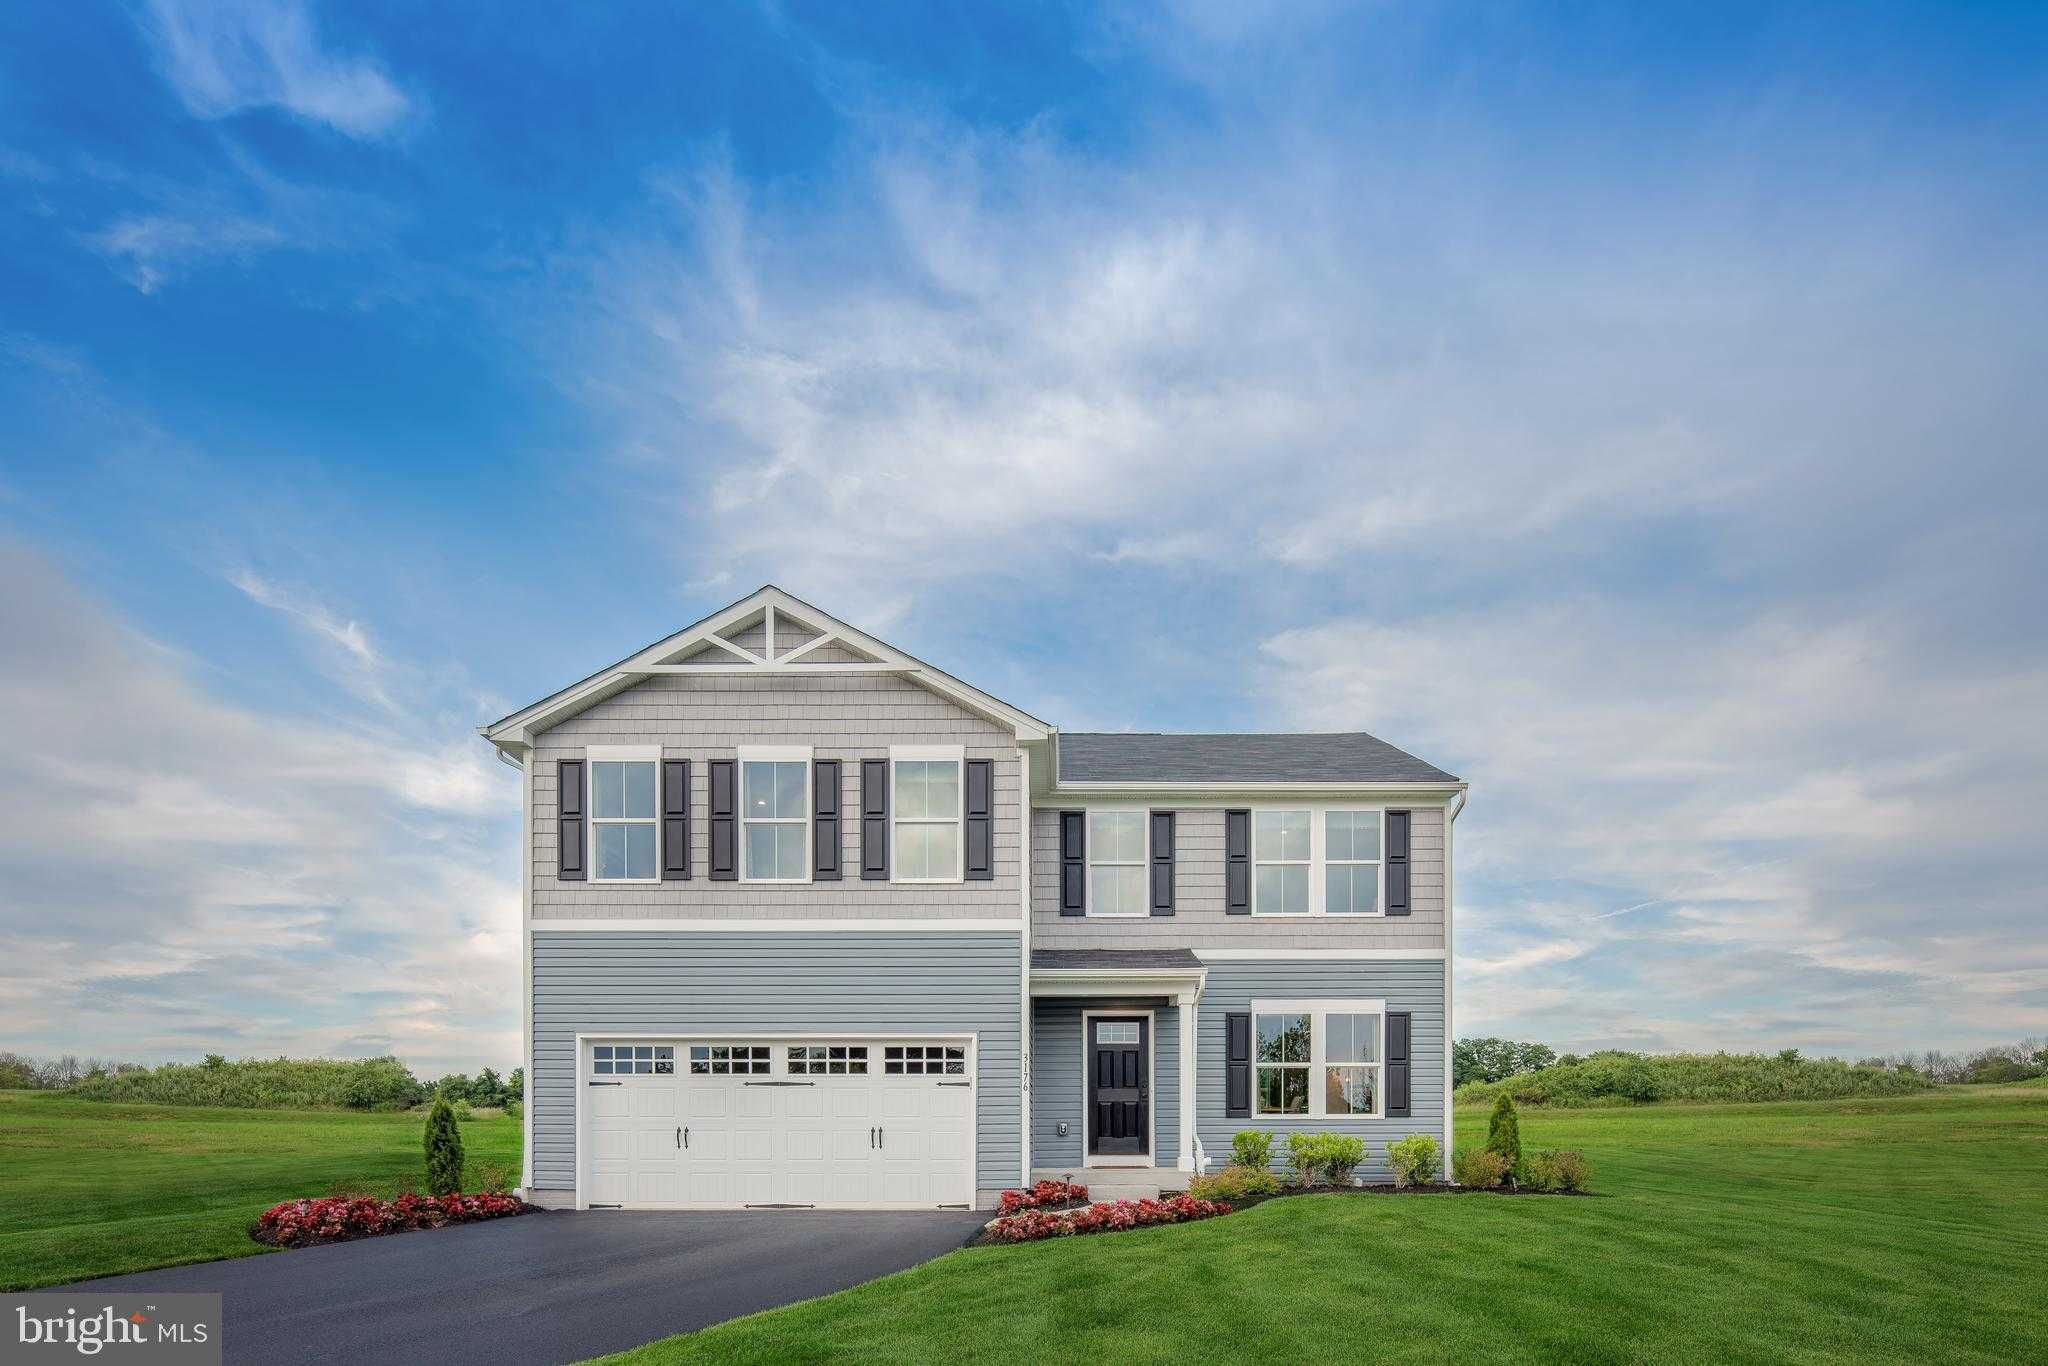 $308,470 - 5Br/3Ba -  for Sale in Ridgely Forest, North East